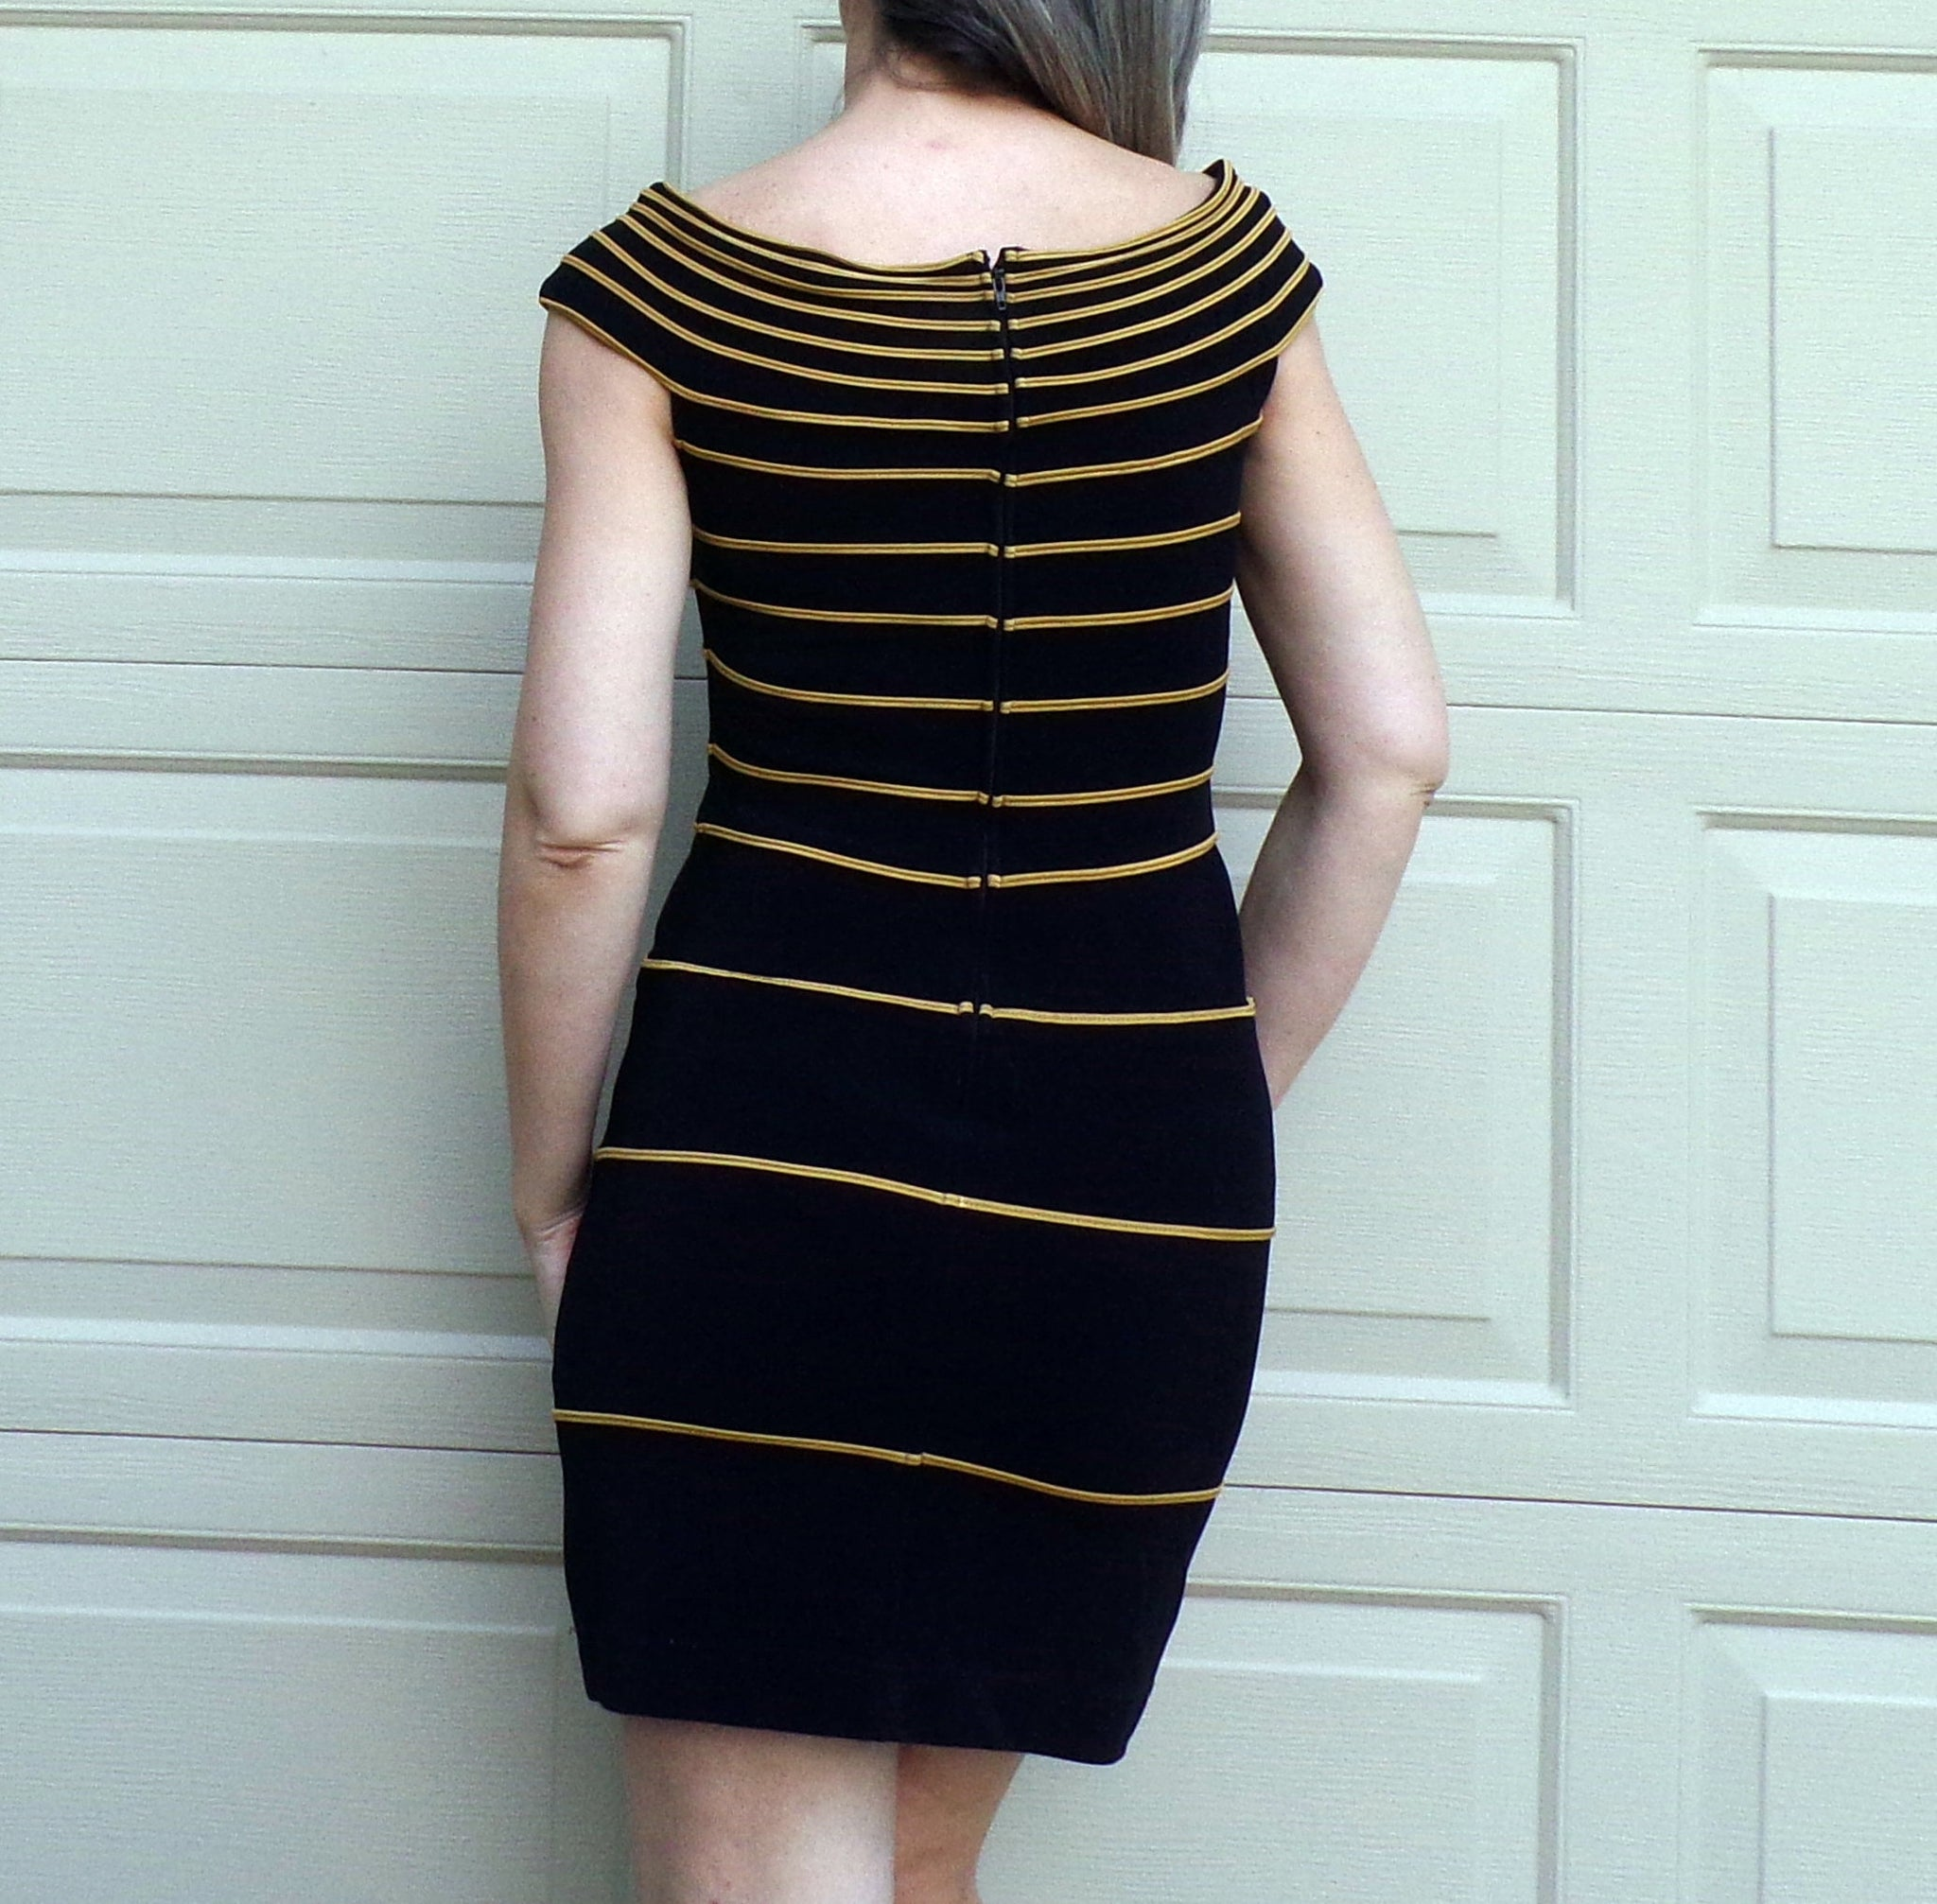 1990s TADASHI SEXY BODYCON dress black and golden yellow S M 90s (D6)